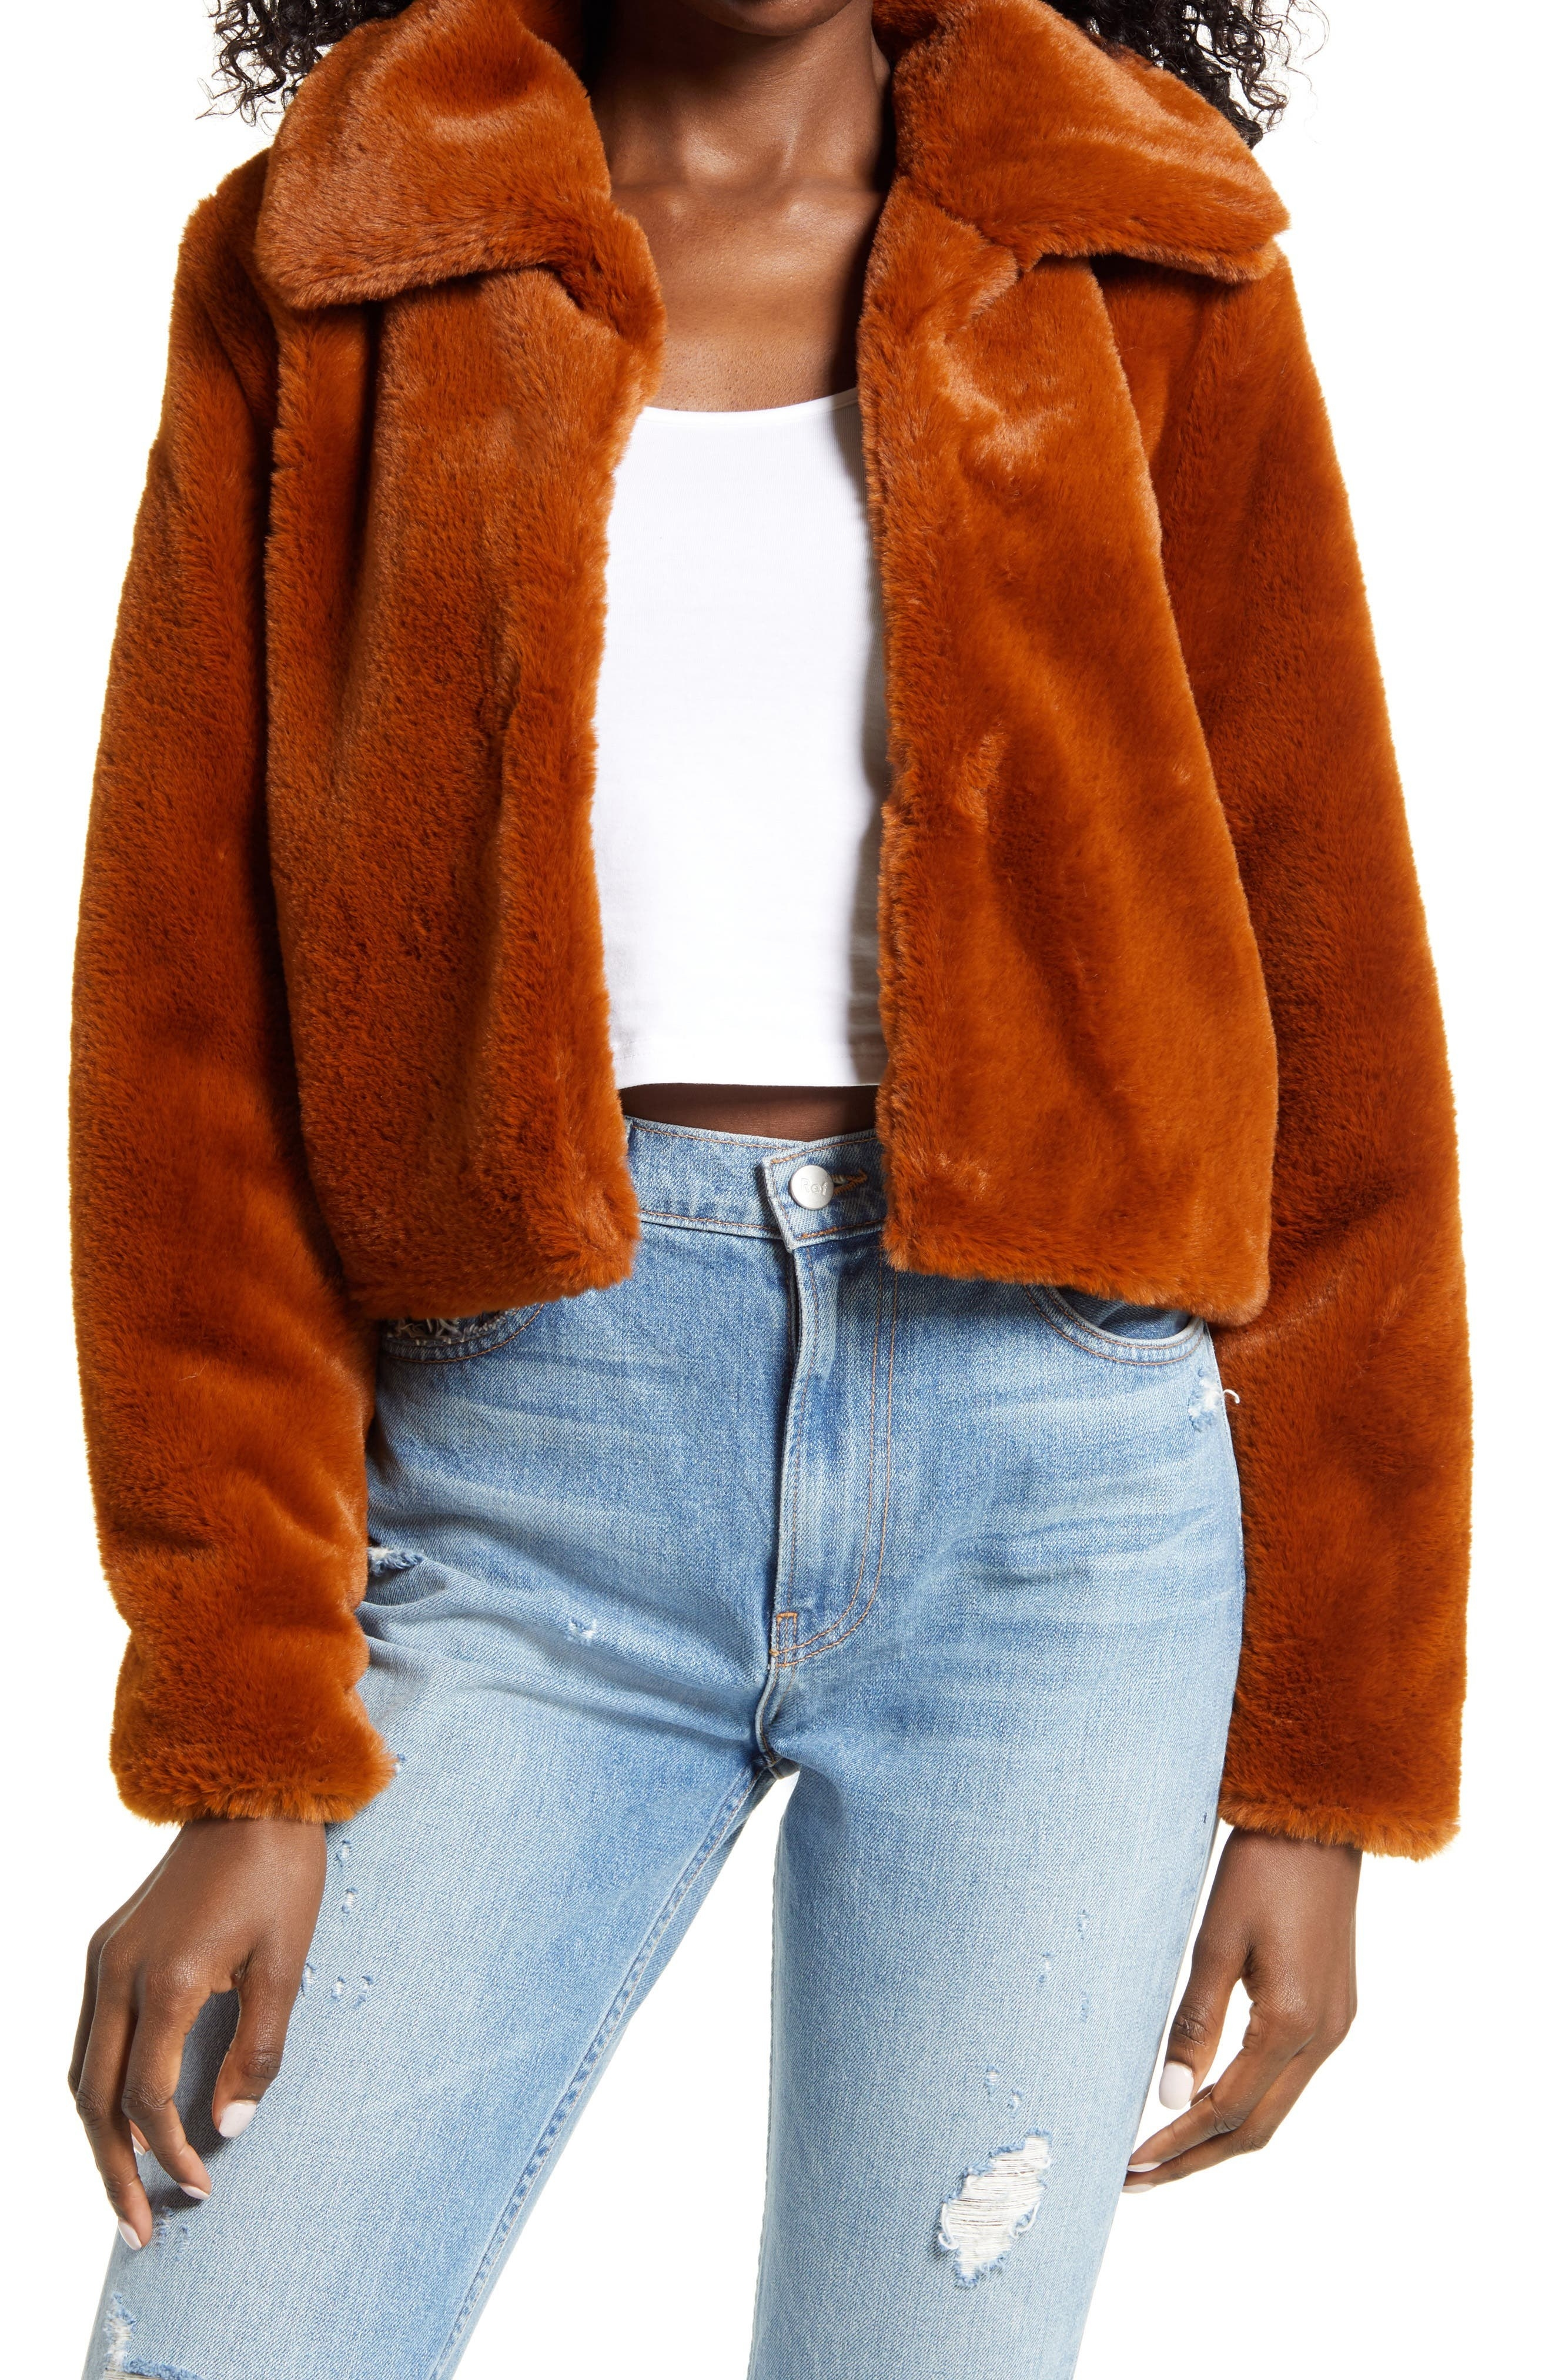 model wearing an cropped orange faux fur jacket over a white shirt and blue jeans